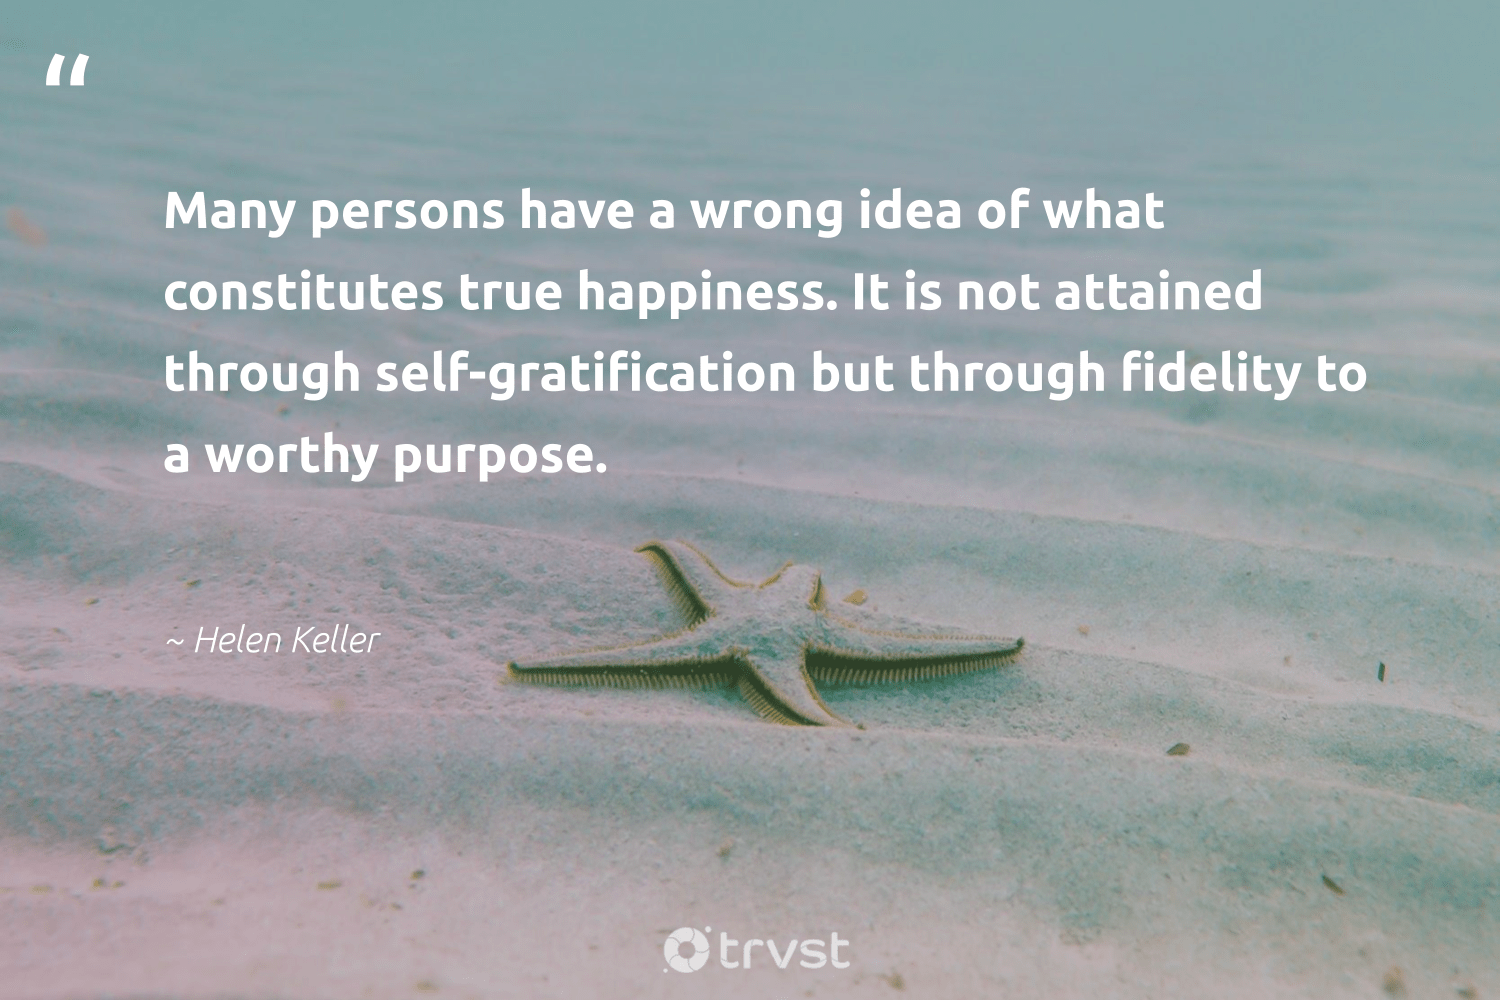 """""""Many persons have a wrong idea of what constitutes true happiness. It is not attained through self-gratification but through fidelity to a worthy purpose.""""  - Helen Keller #trvst #quotes #purpose #happiness #findingpupose #changemakers #mindset #dosomething #purposedriven #nevergiveup #begreat #dogood"""